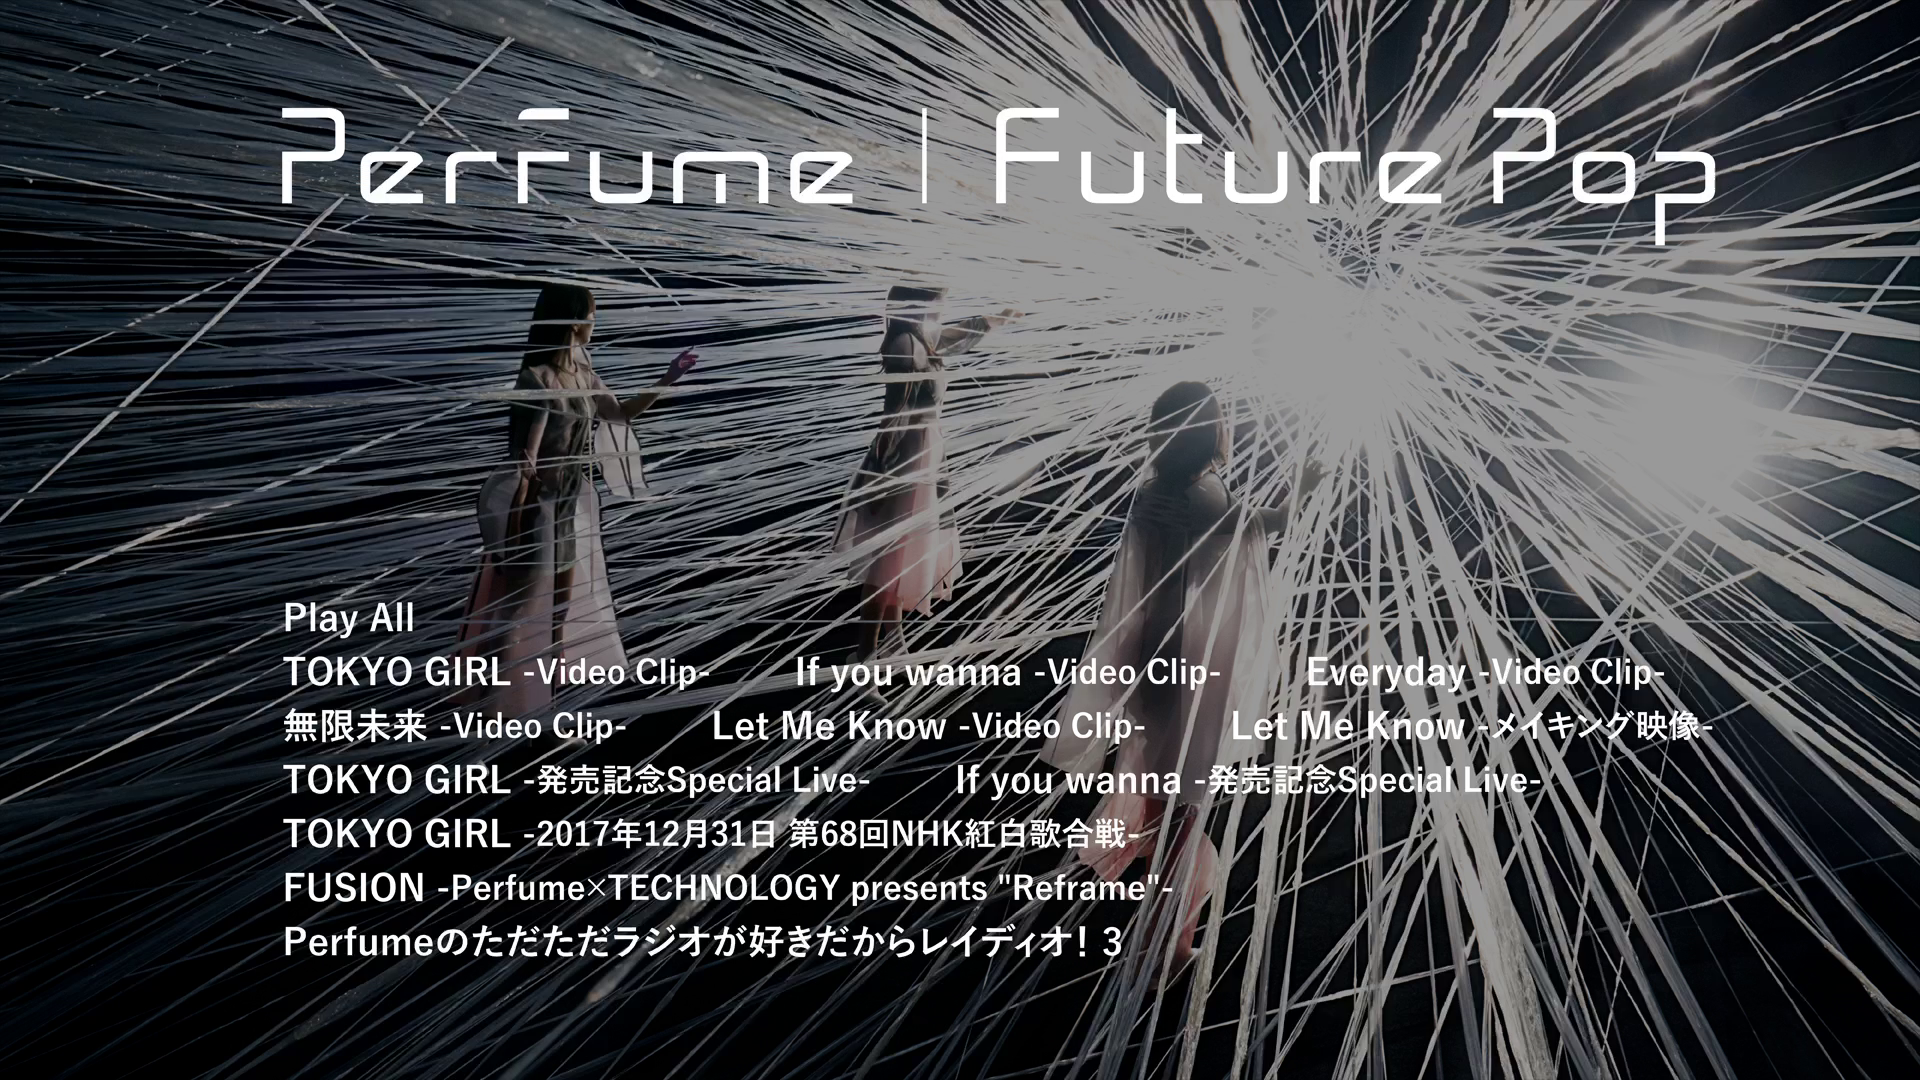 20180814.2200.2 Perfume - Future Pop (Limited edition) (Blu-Ray.iso) (JPOP.ru).png